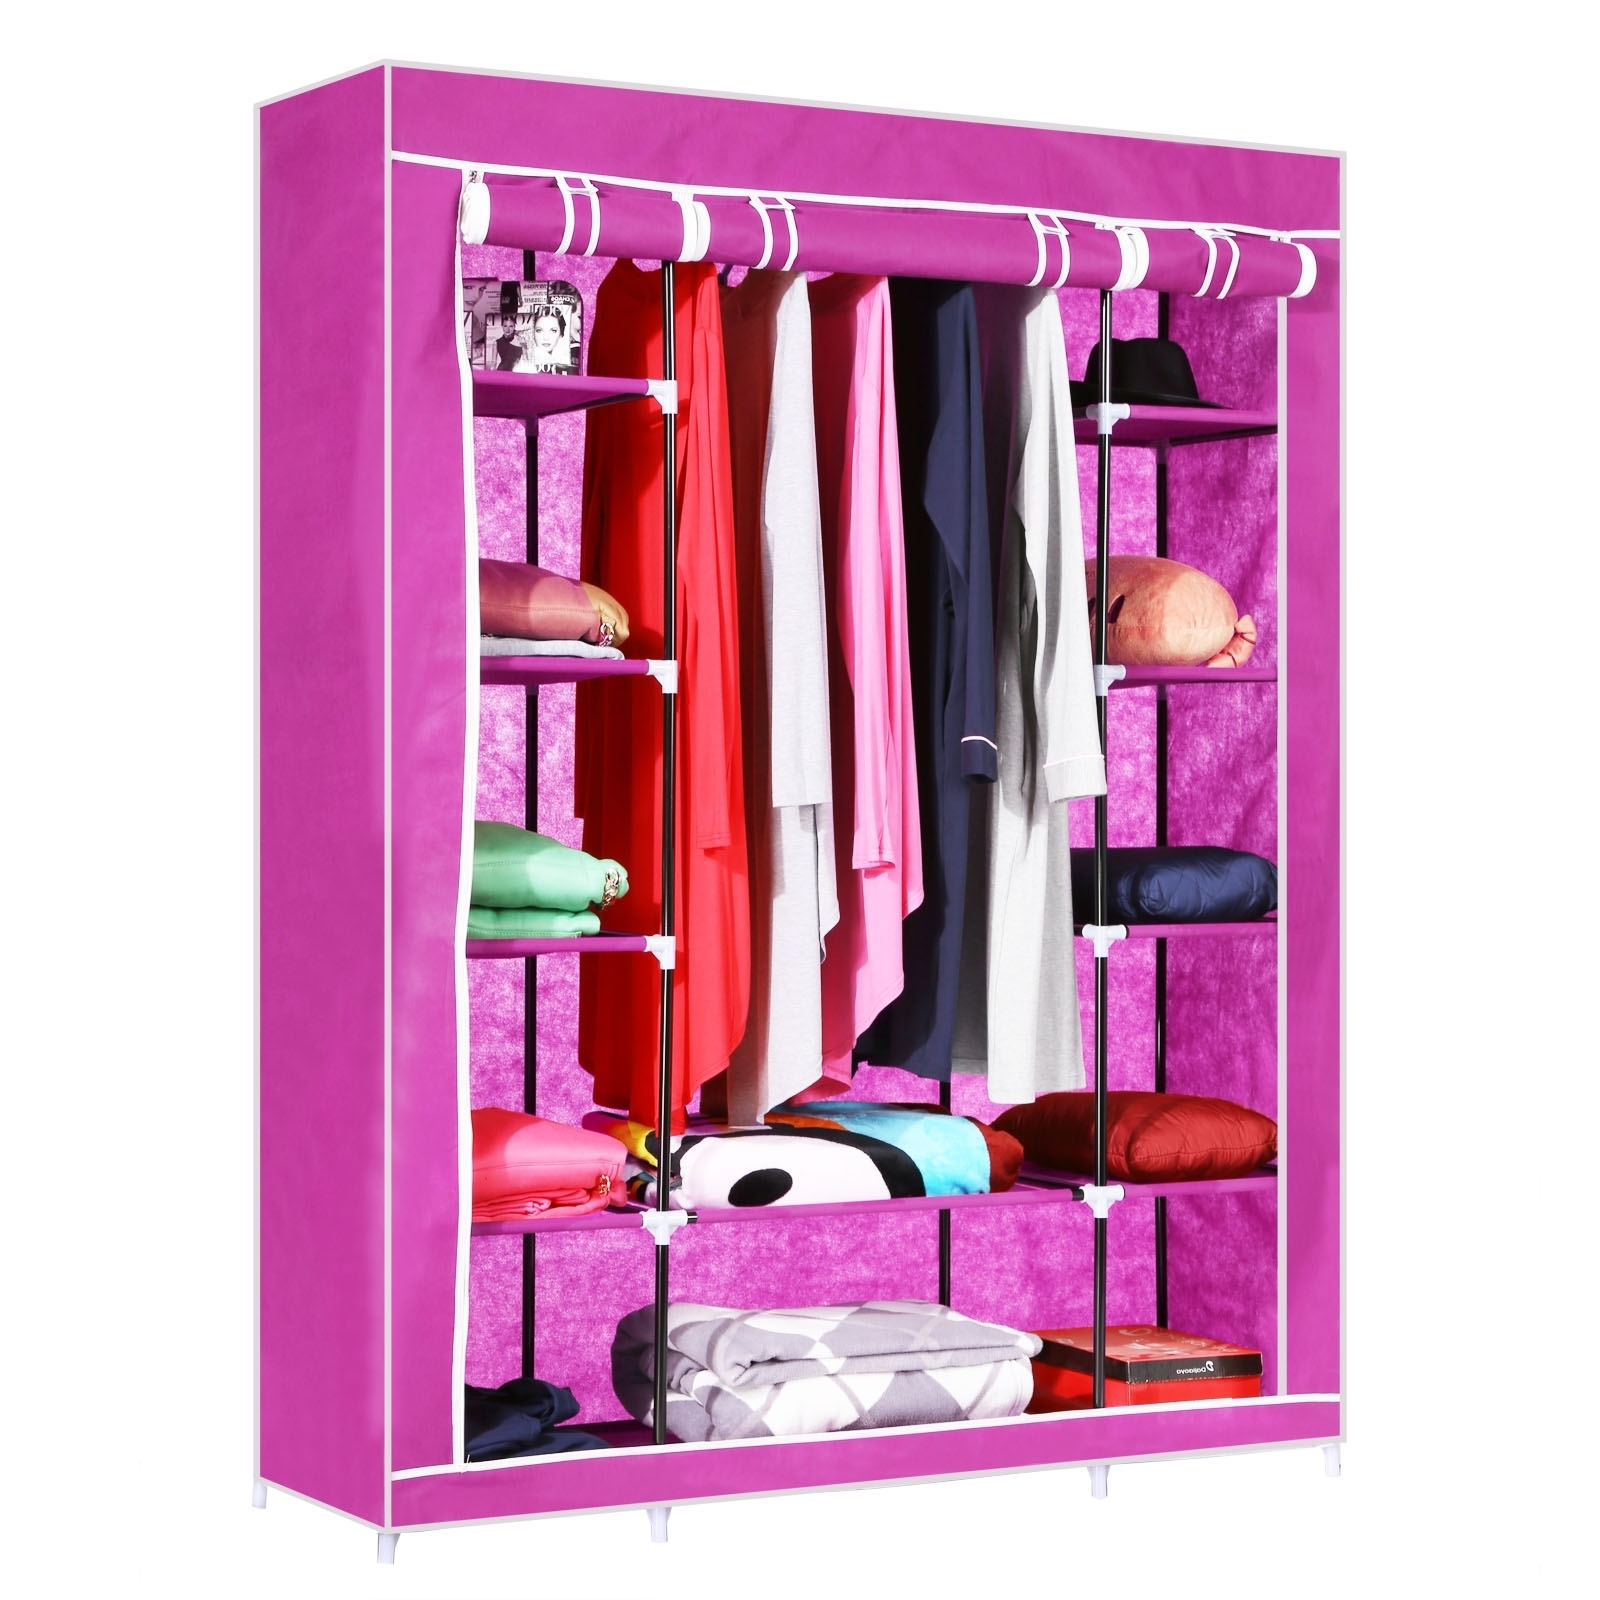 Homdox 52   Portable Closet Storage Organizer Wardrobe Clothes Intended For On The Go With A Portable Wardrobe Closet (Image 5 of 27)